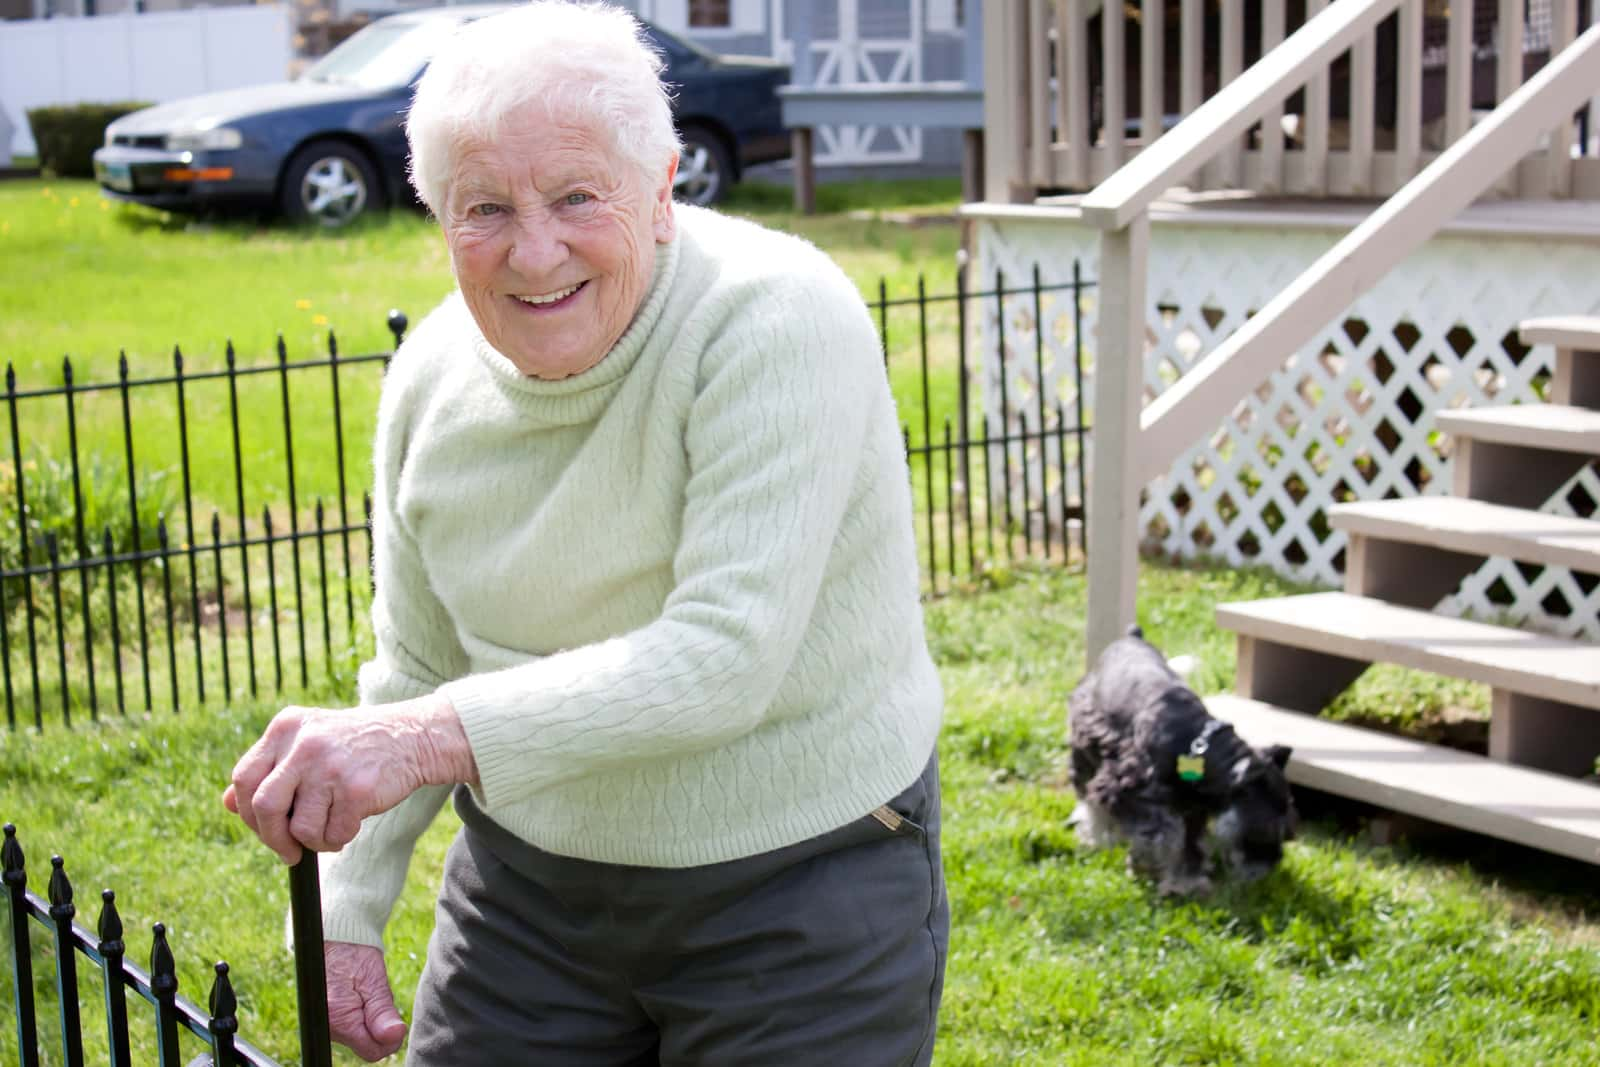 senior lady looking happy with her dog at the bottom of some stairs